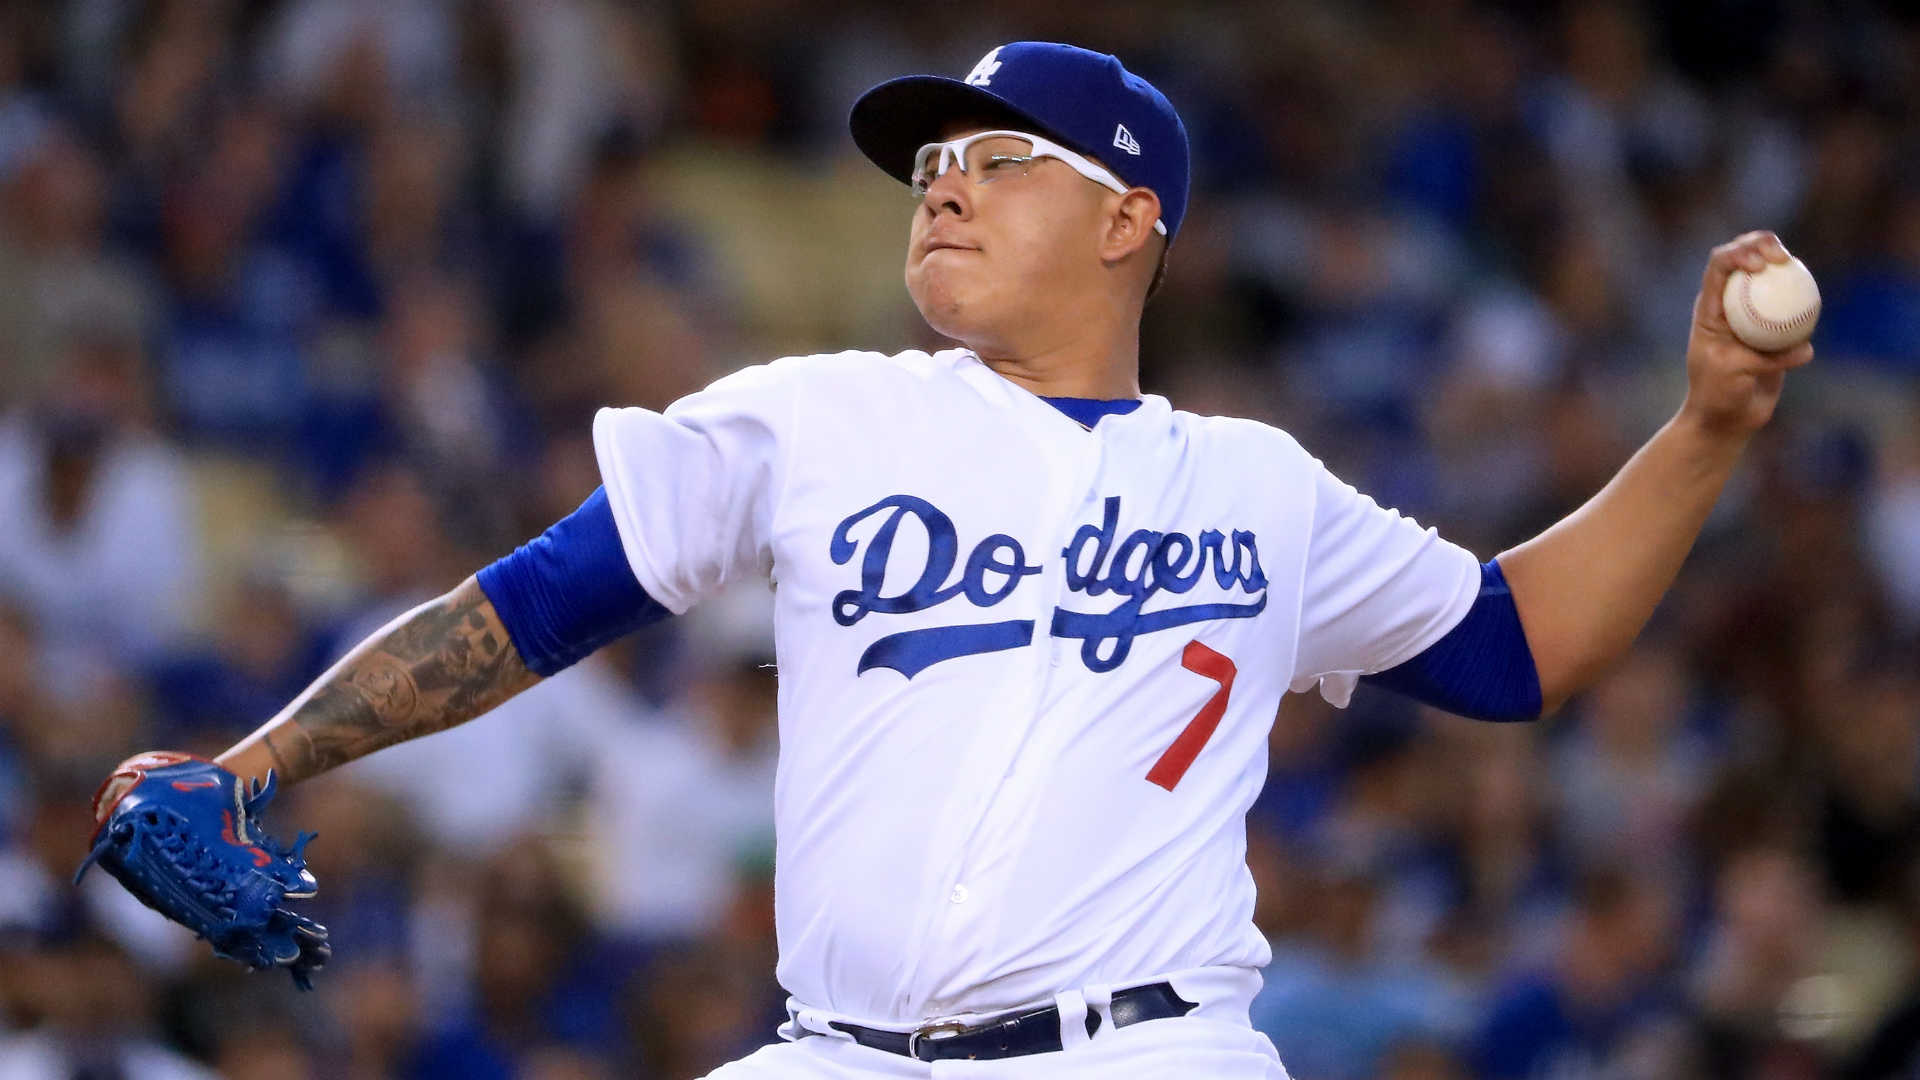 Dodgers' Urias to have season-ending shoulder surgery